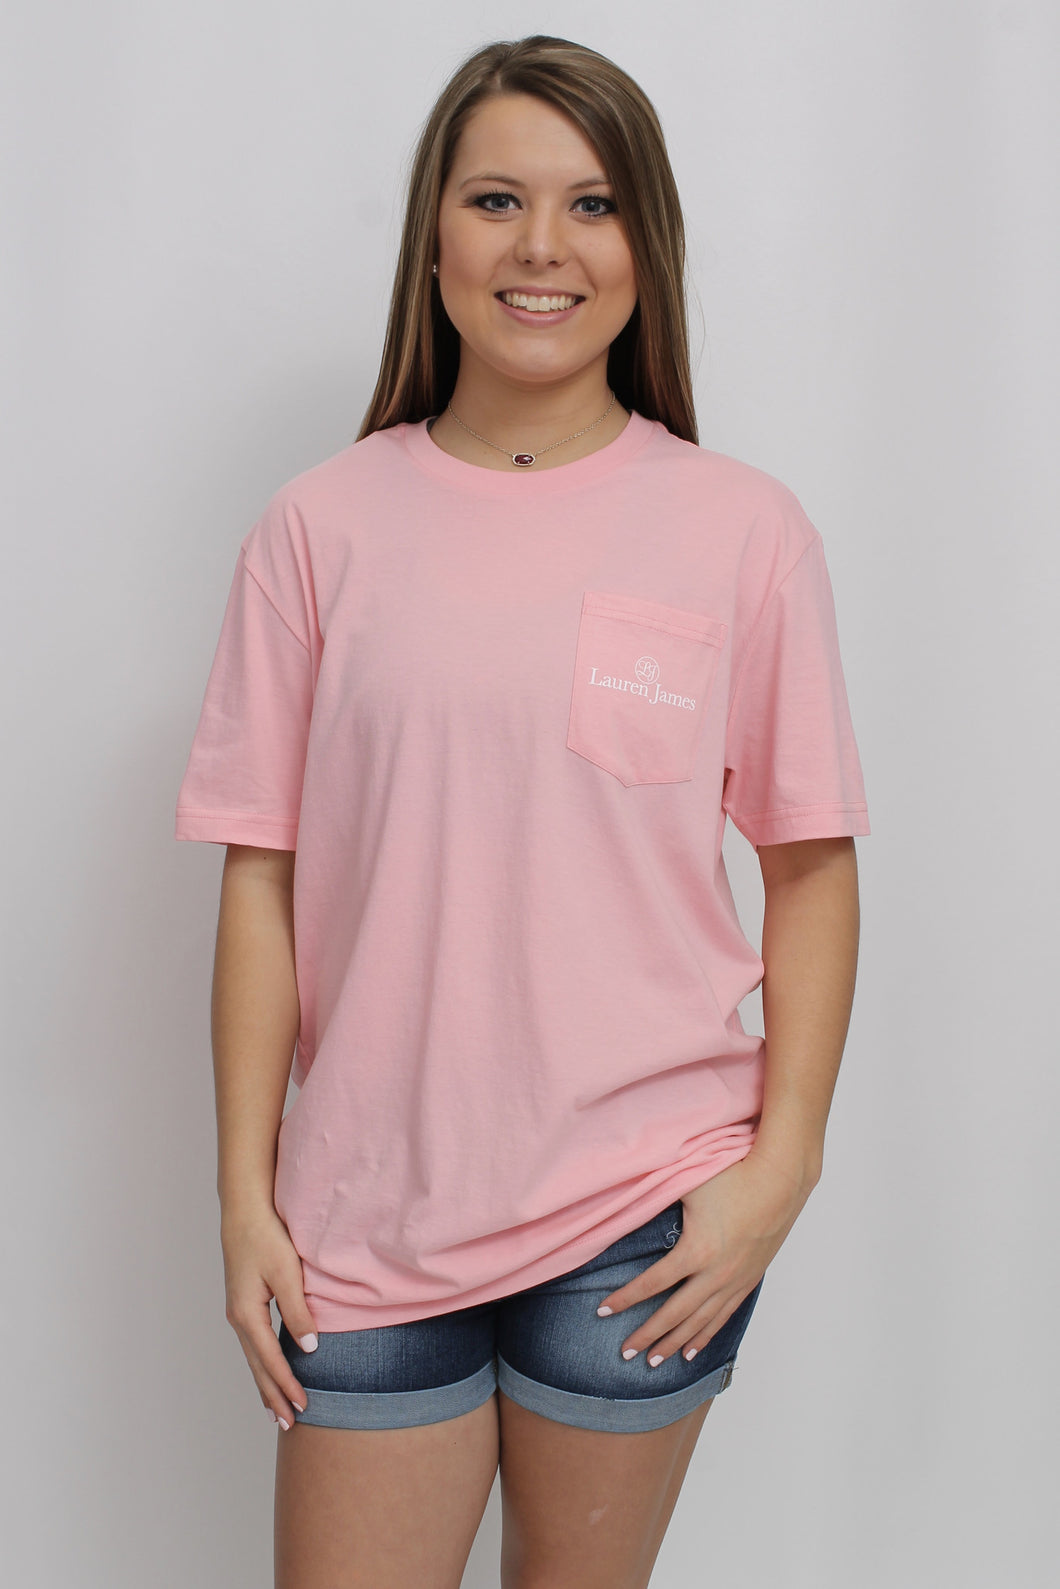 Cotton Candy Pink S/S- Lauren James Macaroon Afternoon Short Sleeve Front